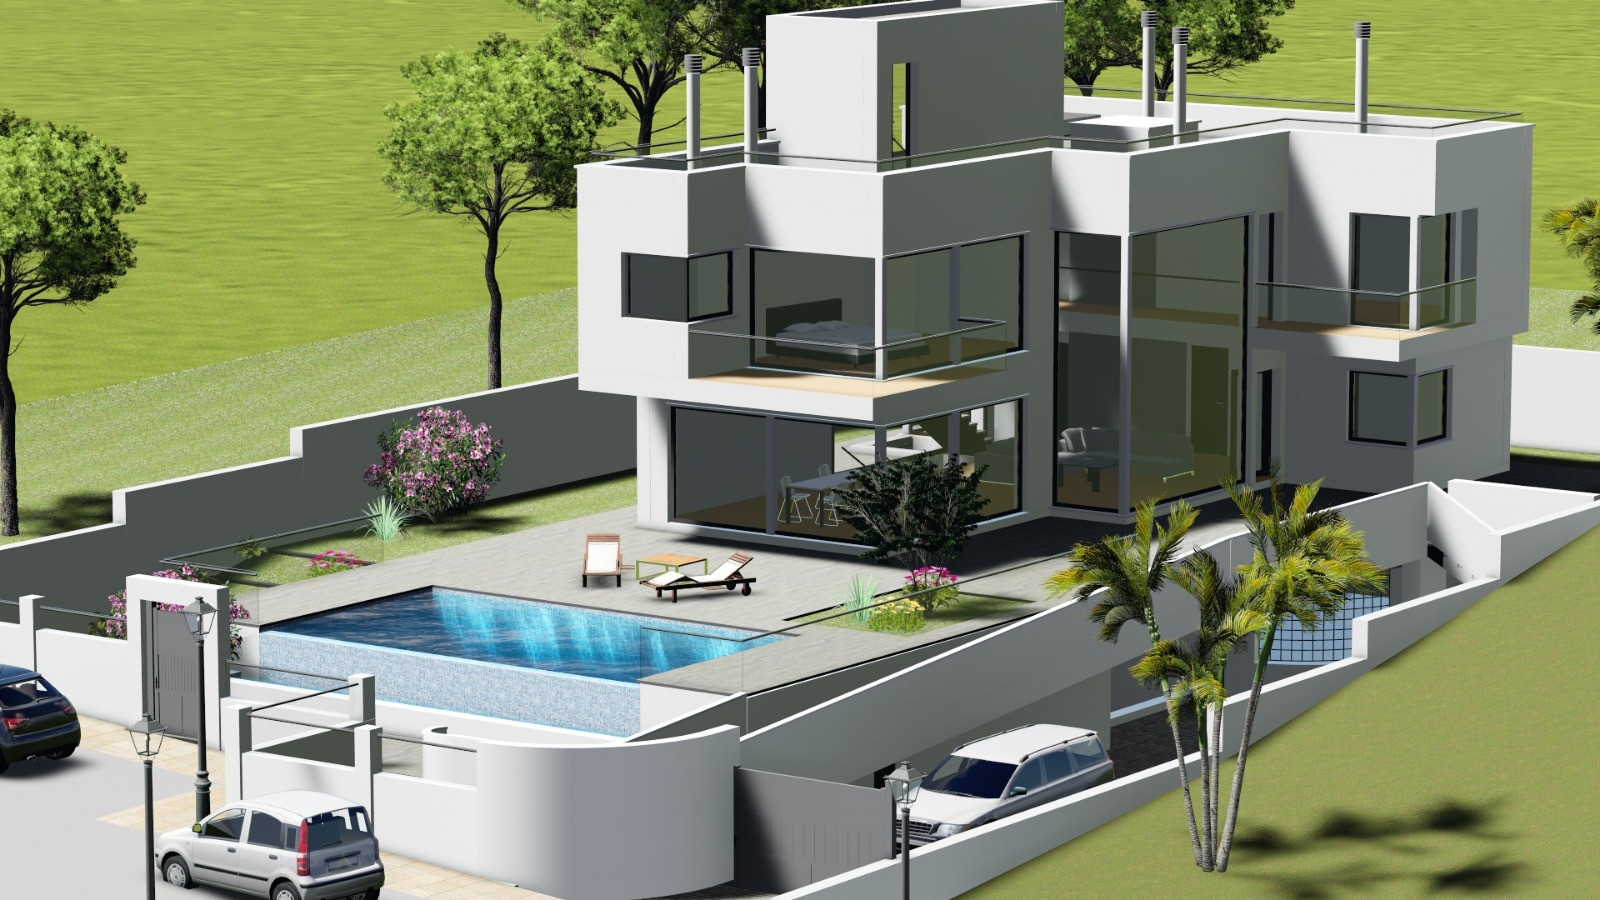 Two modern golf luxury villas with infinity pool, basement and garage for sale in La Cala Golf Resort